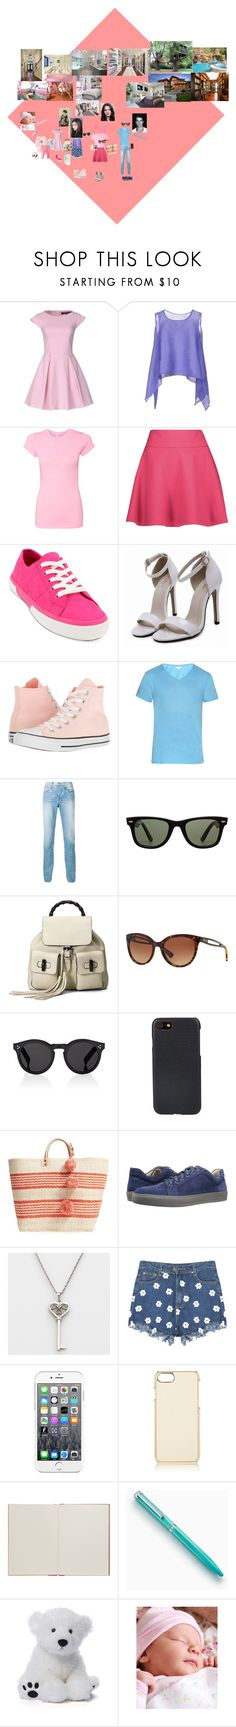 """Familie en house"" by jadehupkes ❤ liked on Polyvore featuring Ter Et Bantine, Issey Miyake Cauliflower, RED Valentino, Lauren Ralph Lauren, Converse, Orlebar Brown, 3x1, Ray-Ban, Gucci and RALPH"